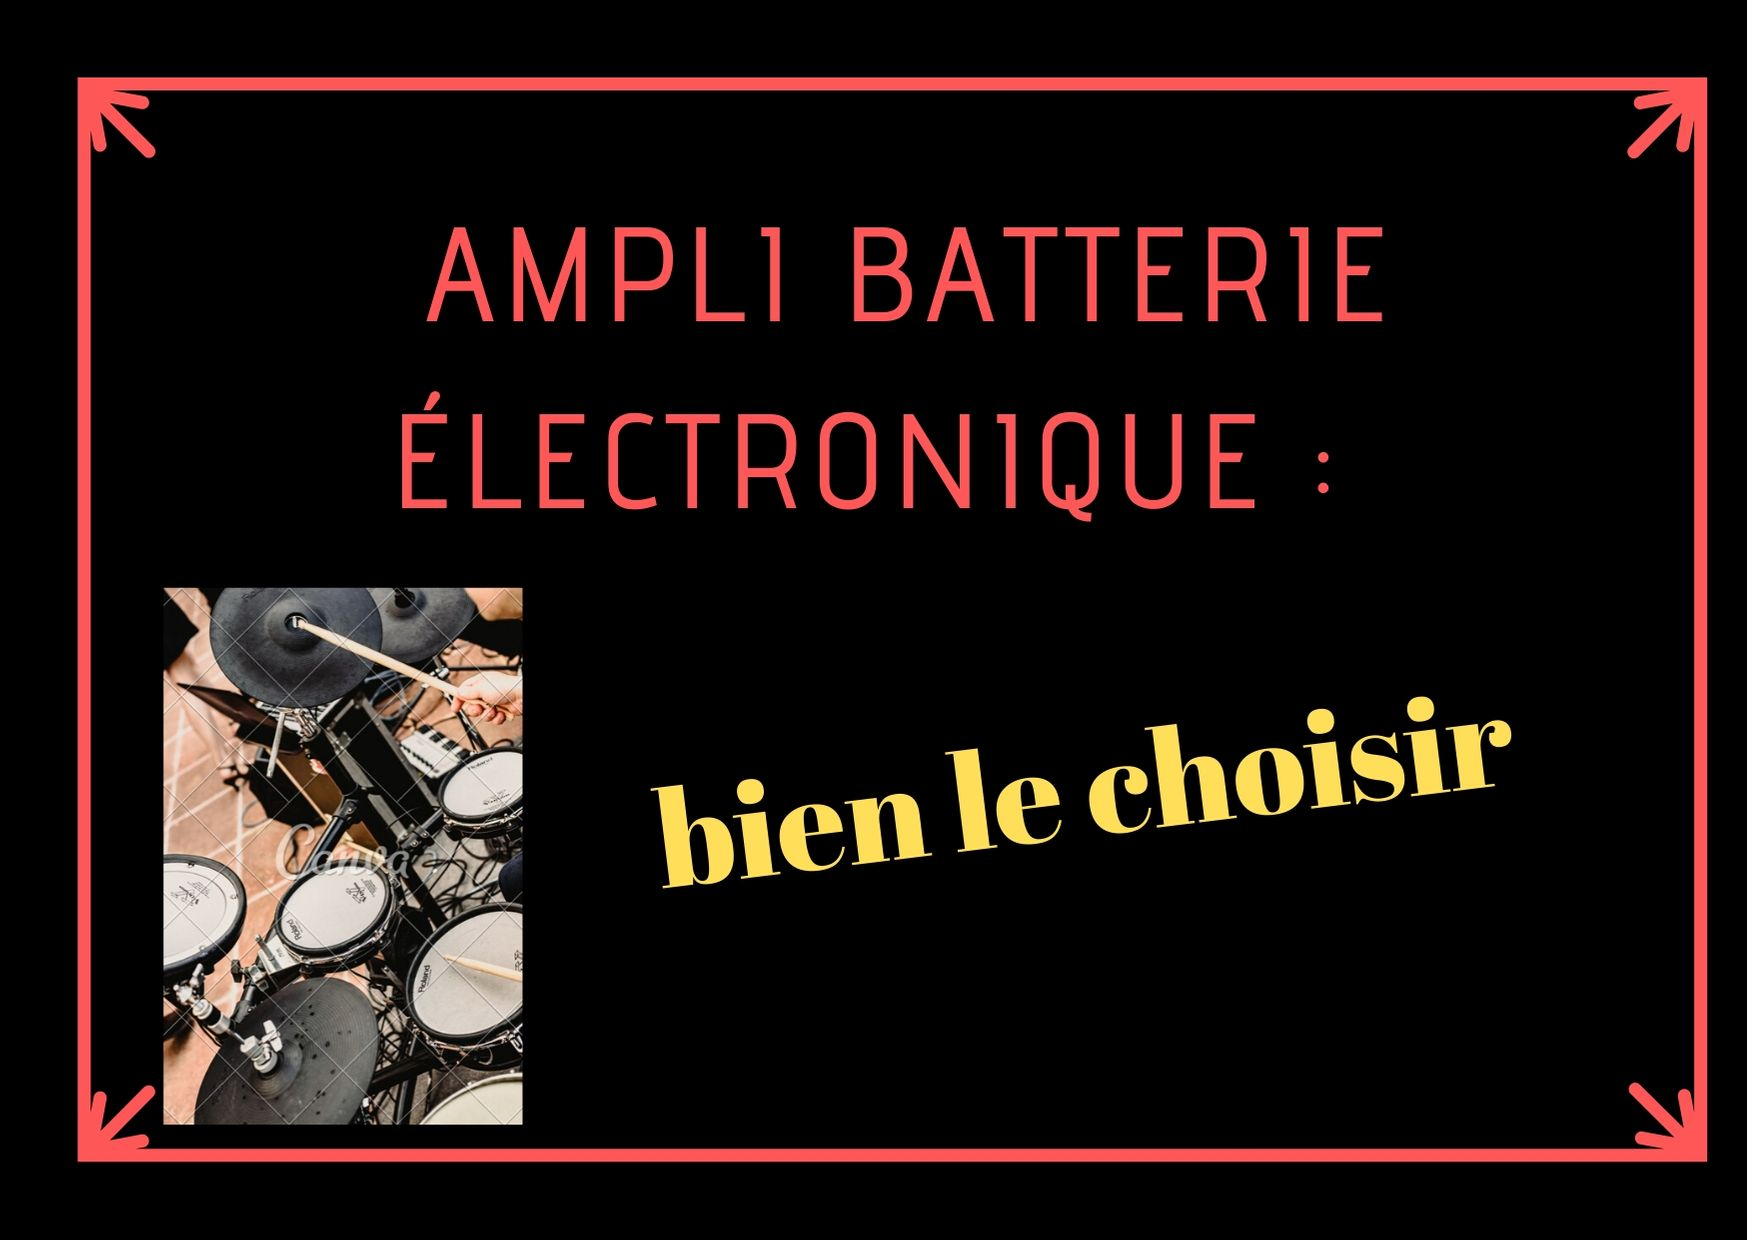 ampli batterie electronique